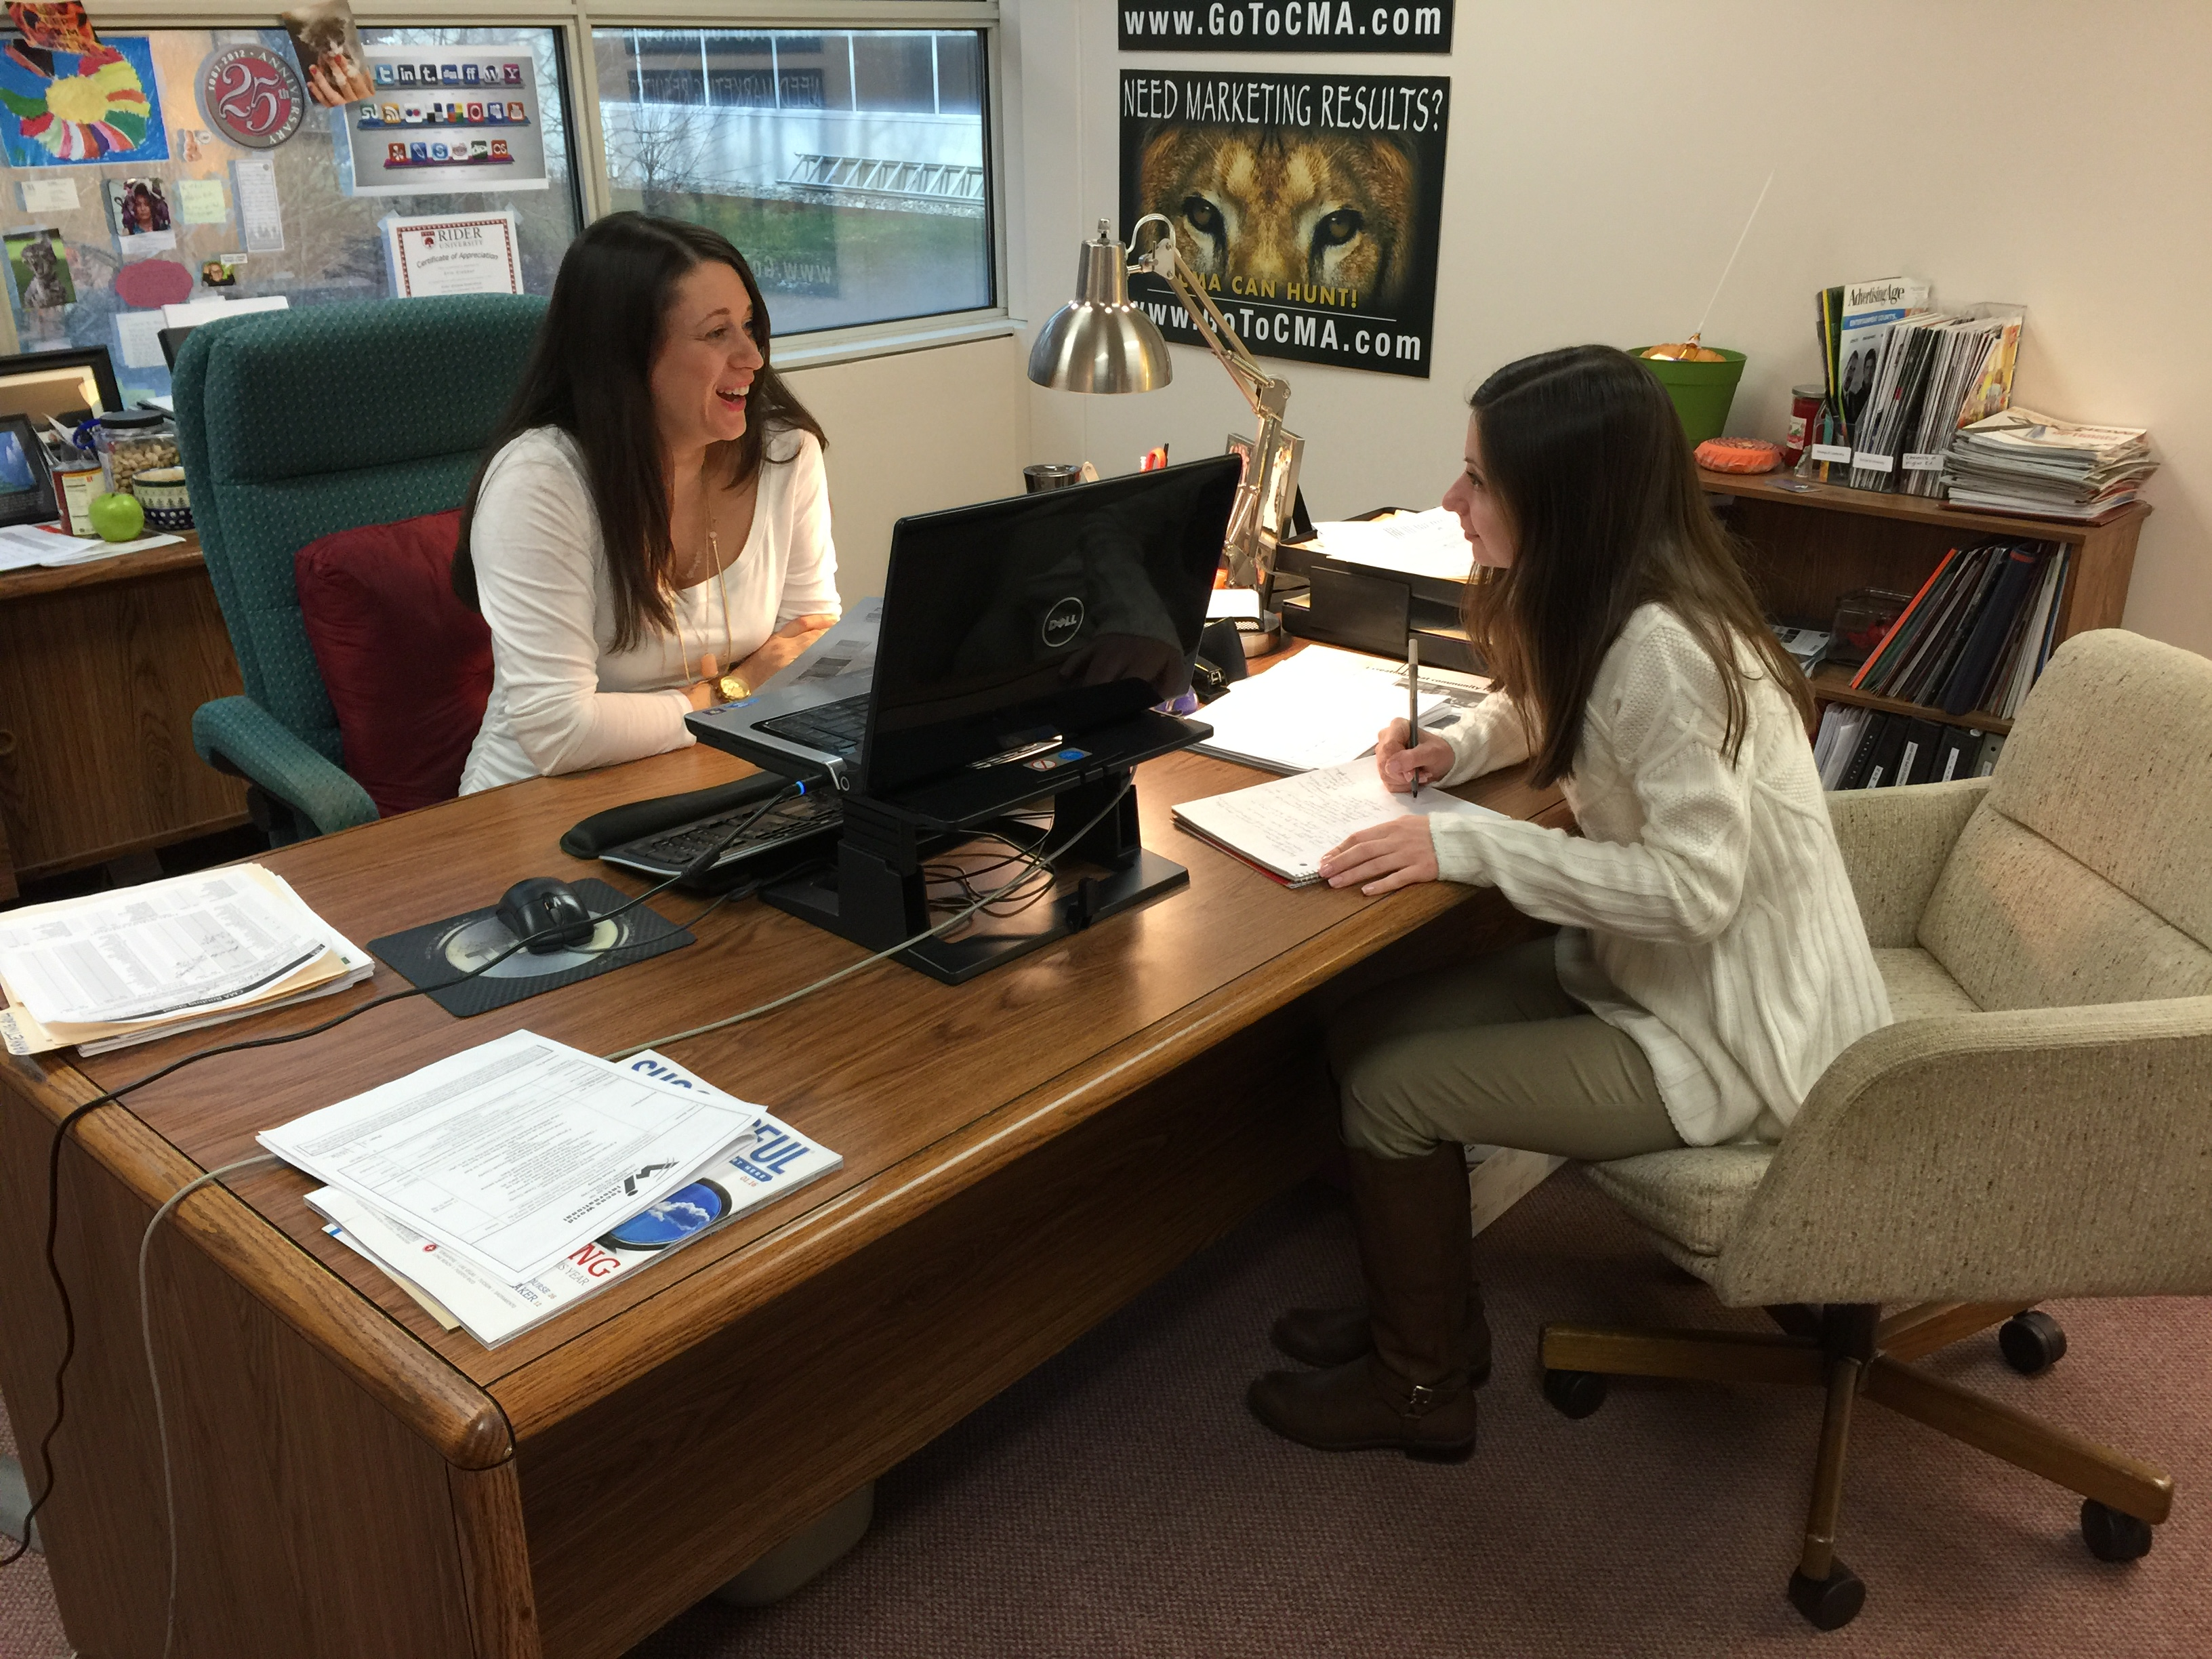 Alexandra Perrine, a Rider University marketing major from West Windsor, works with Erin Klebaur, director of marketing services, as she reports her findings after doing website evaluations as part of her internship at Creative Marketing Alliance.